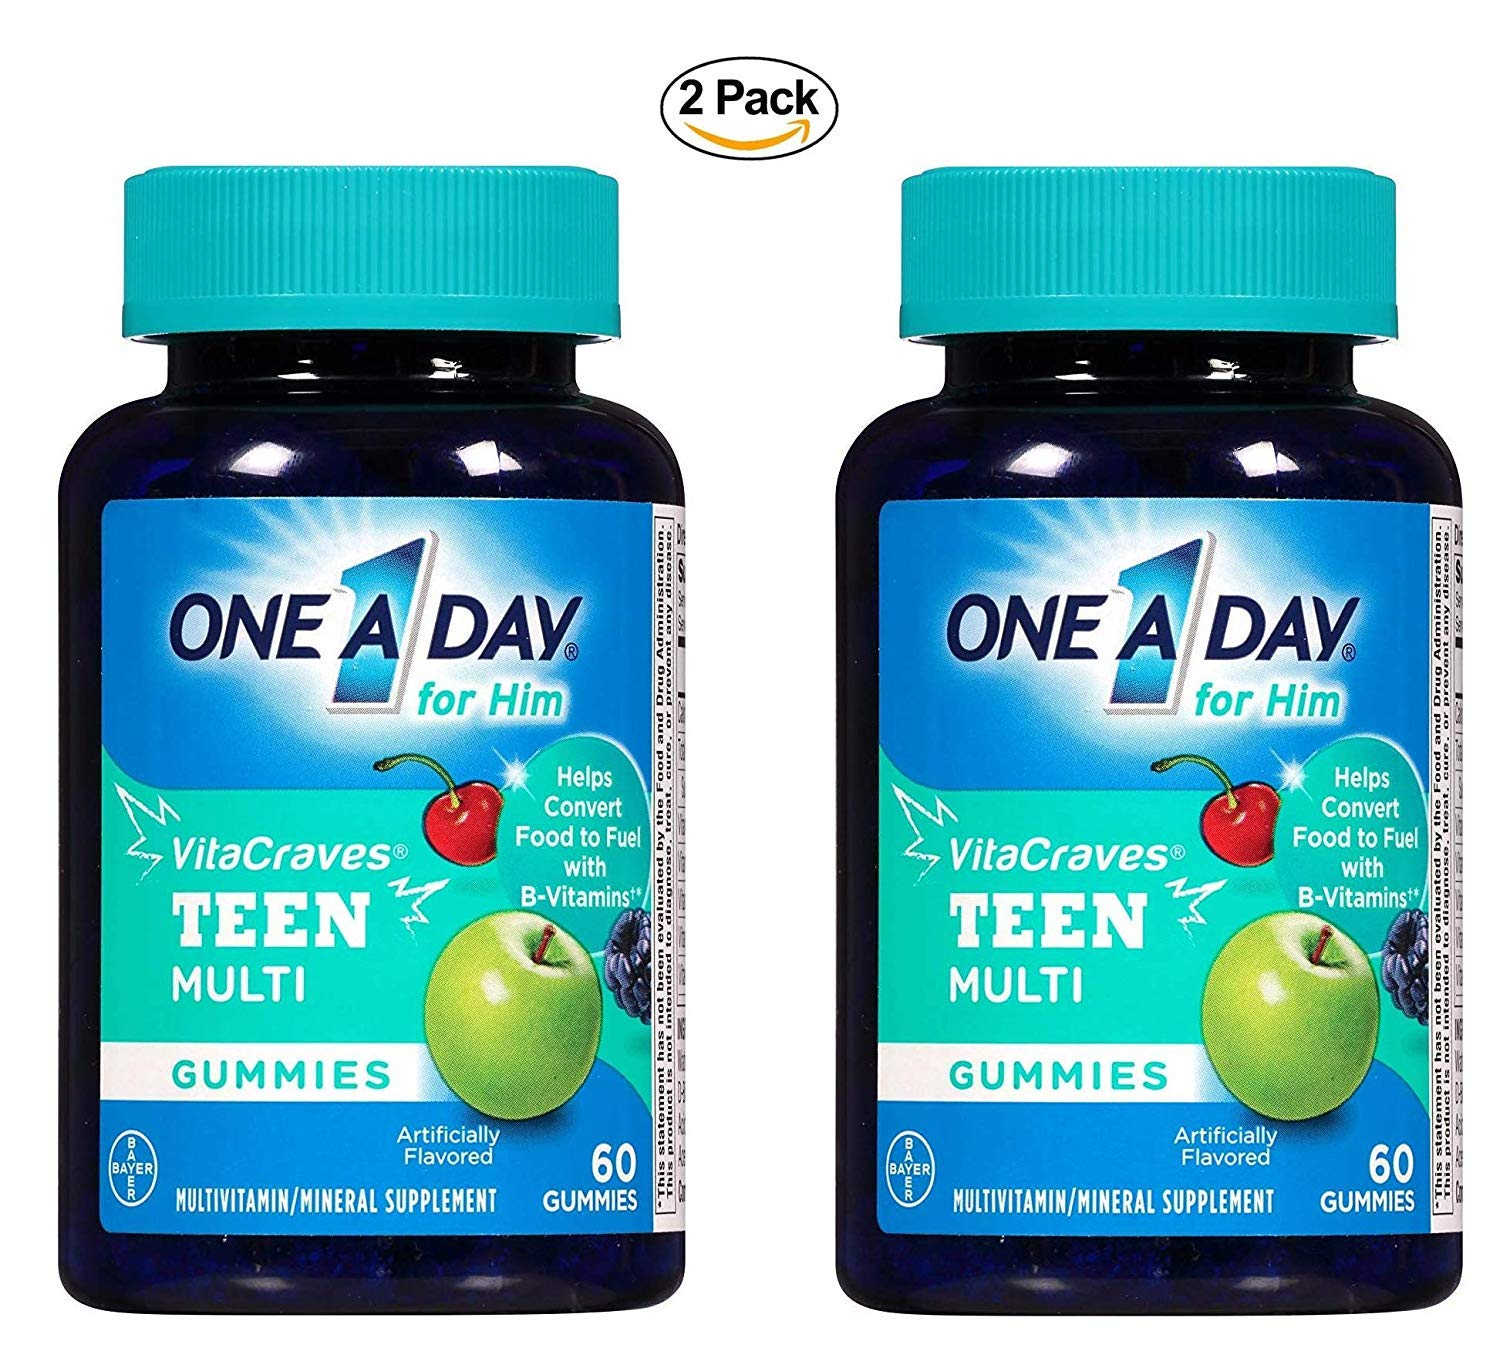 One A Day Vitacraves Teen for Him, 60 Count – Buy Packs and SAVE Pack of 2